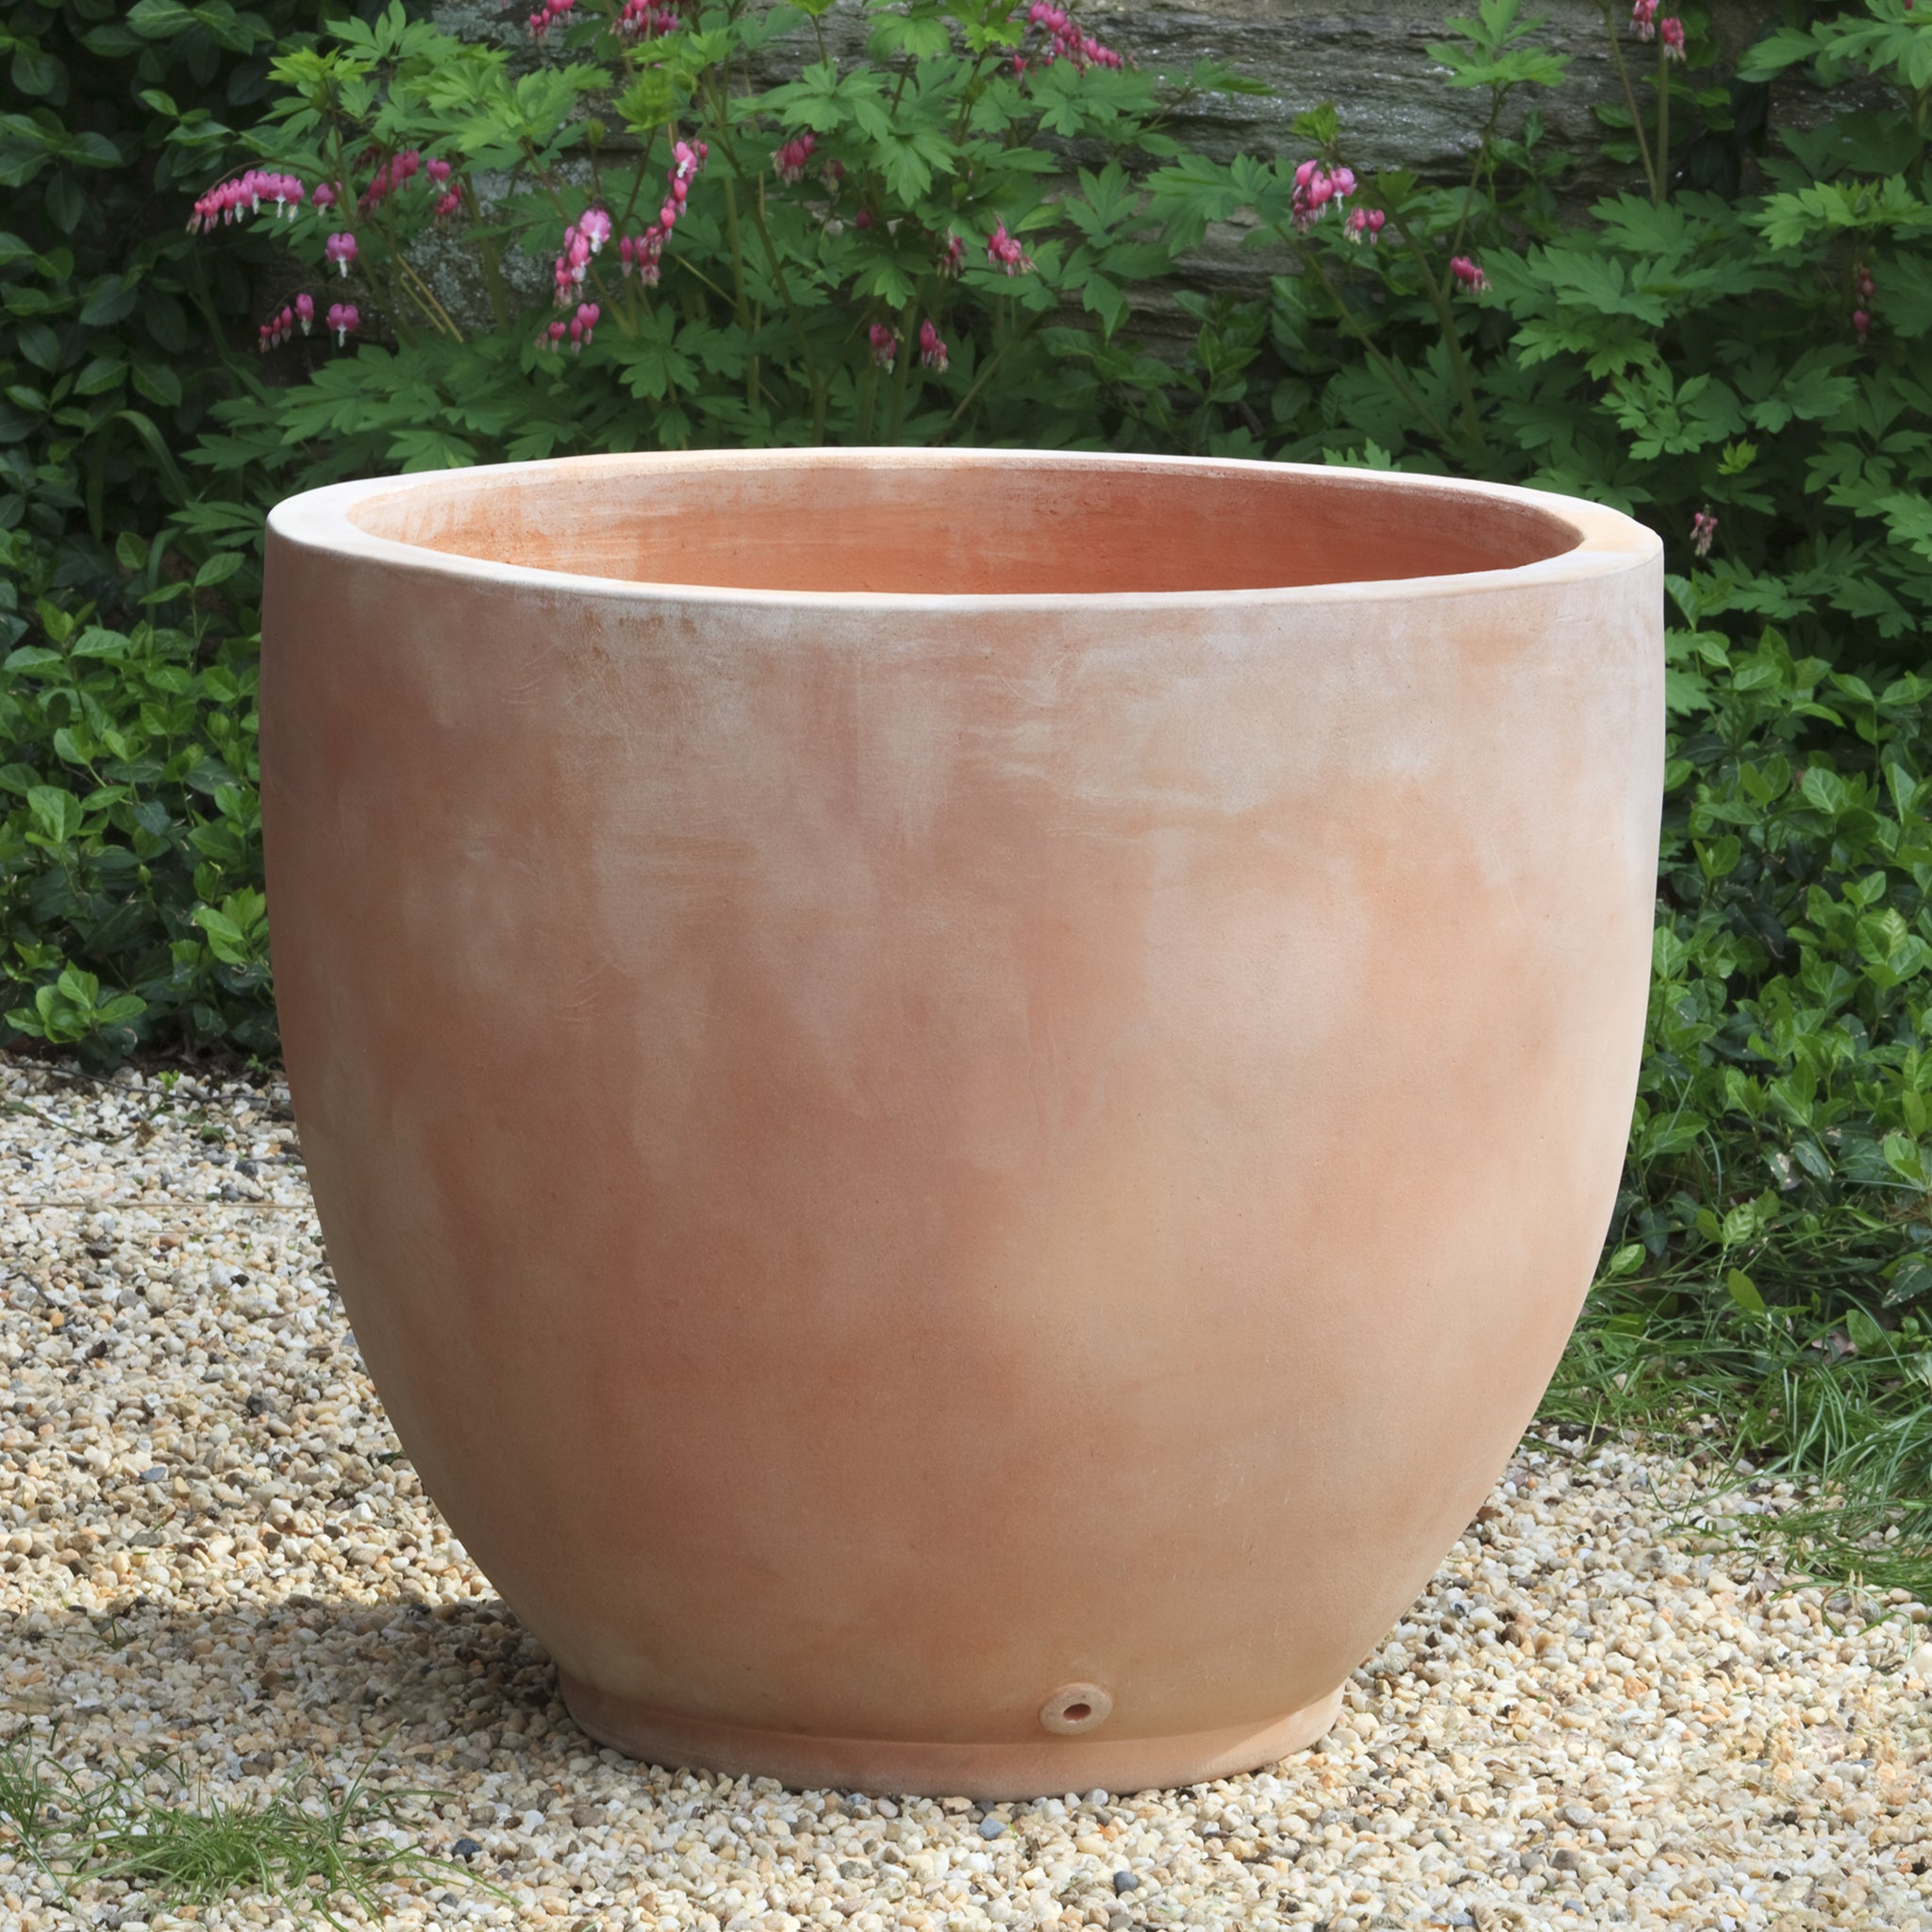 Causago Outdoor Pot